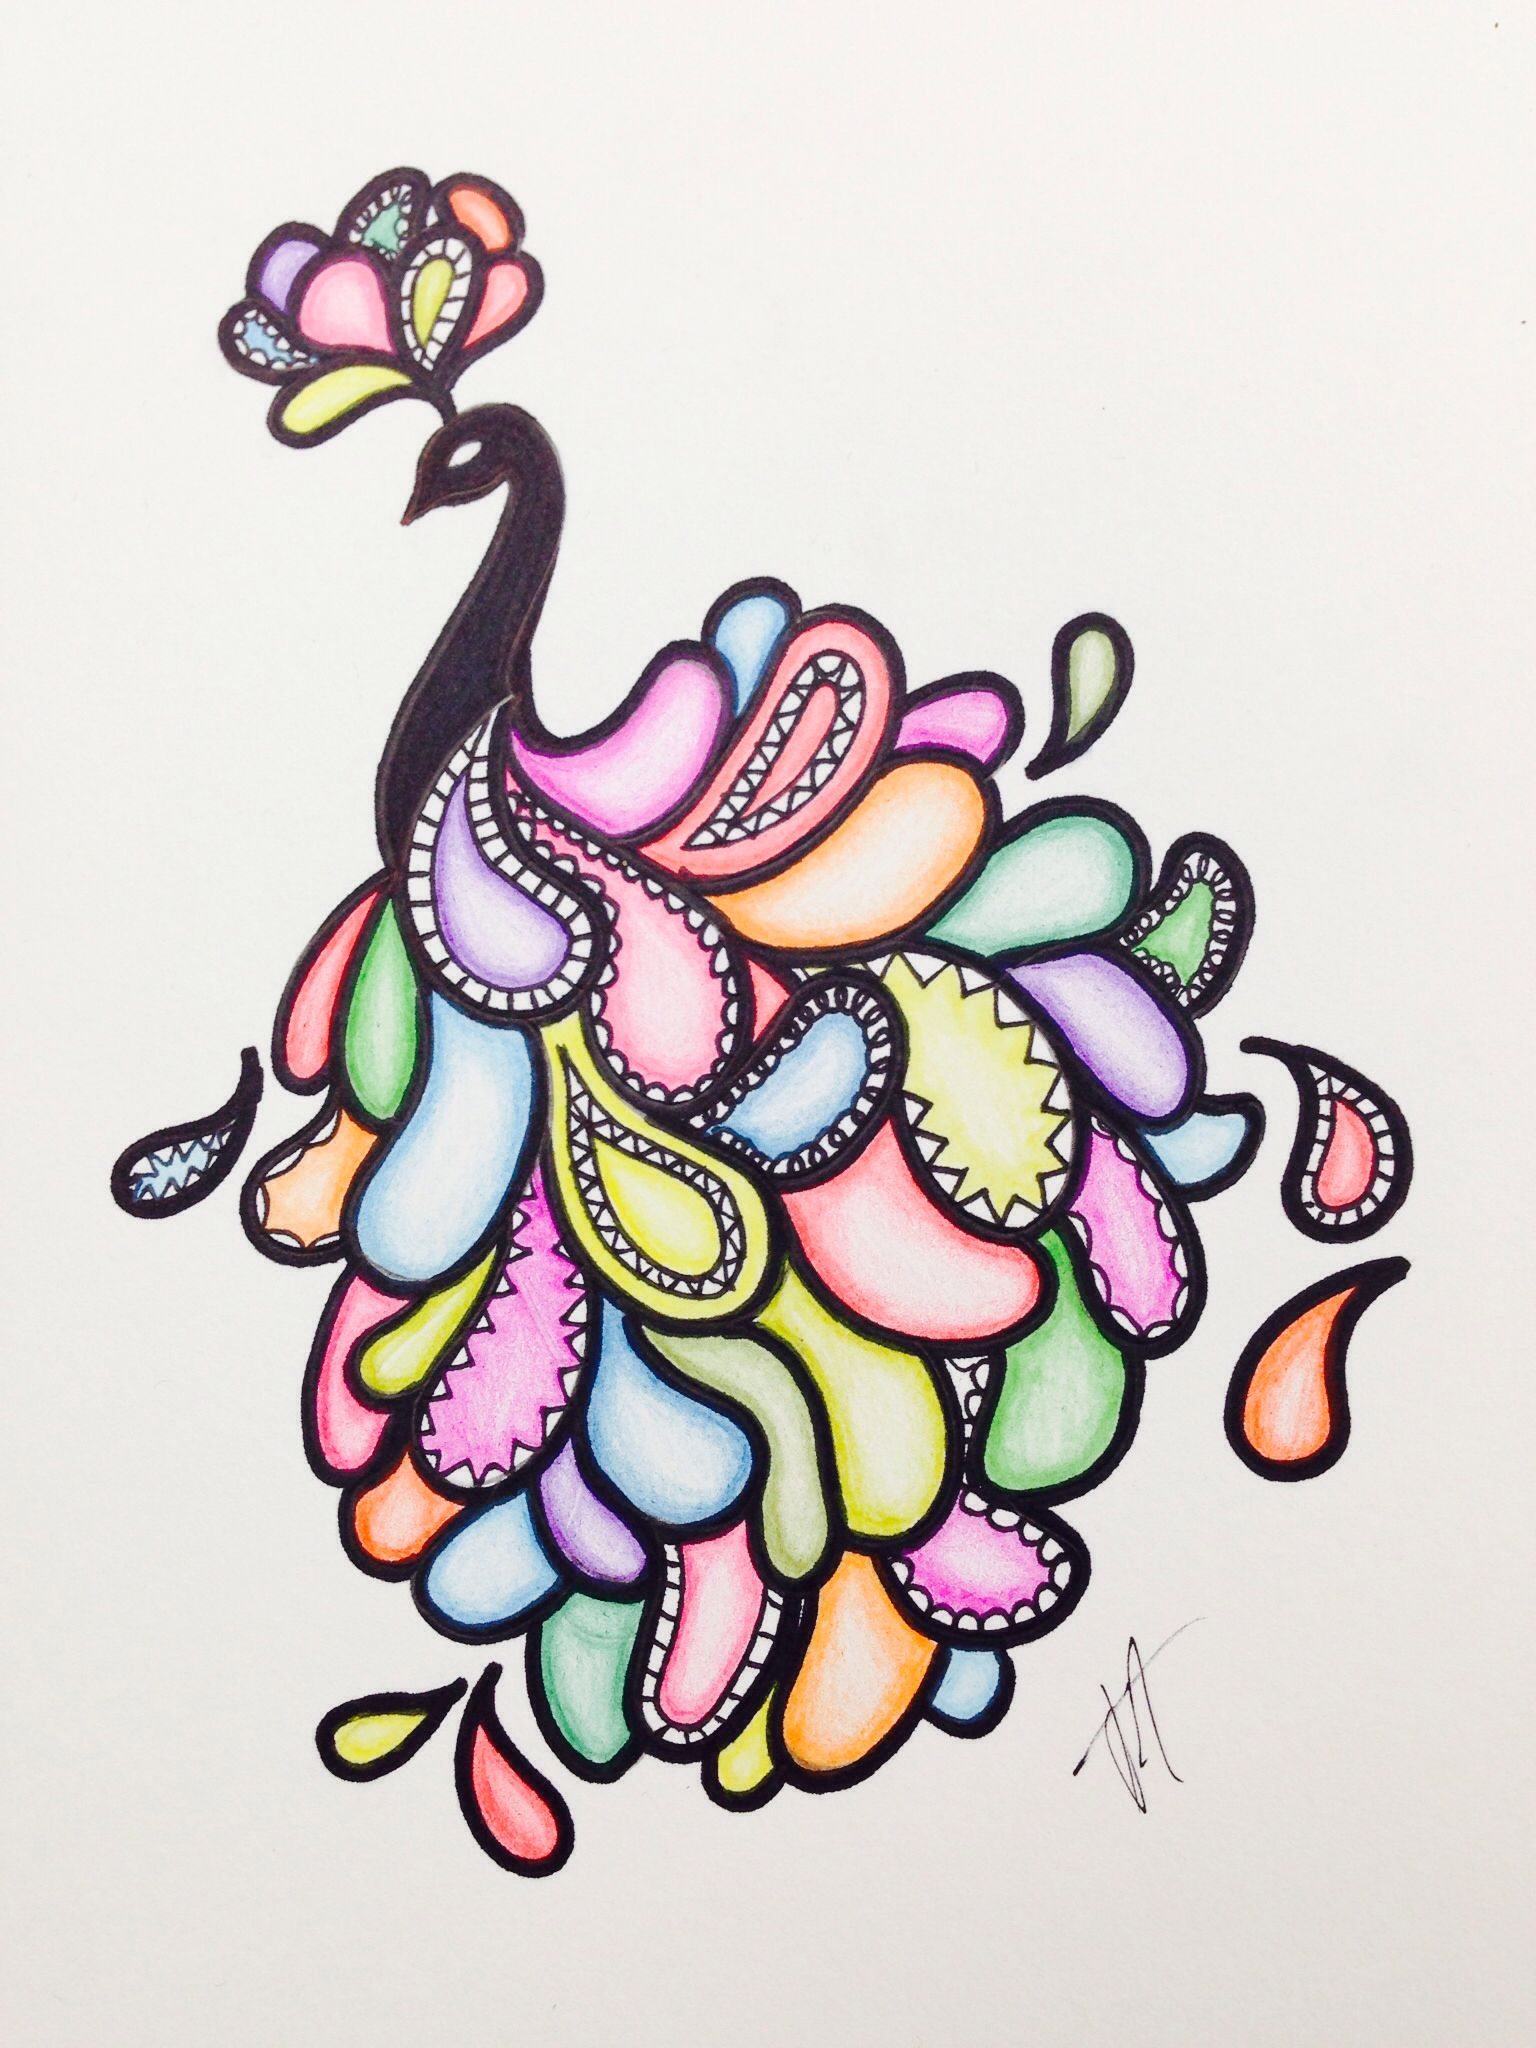 Easy Peacock Drawing With Sharpie And Colored Pencils My Art